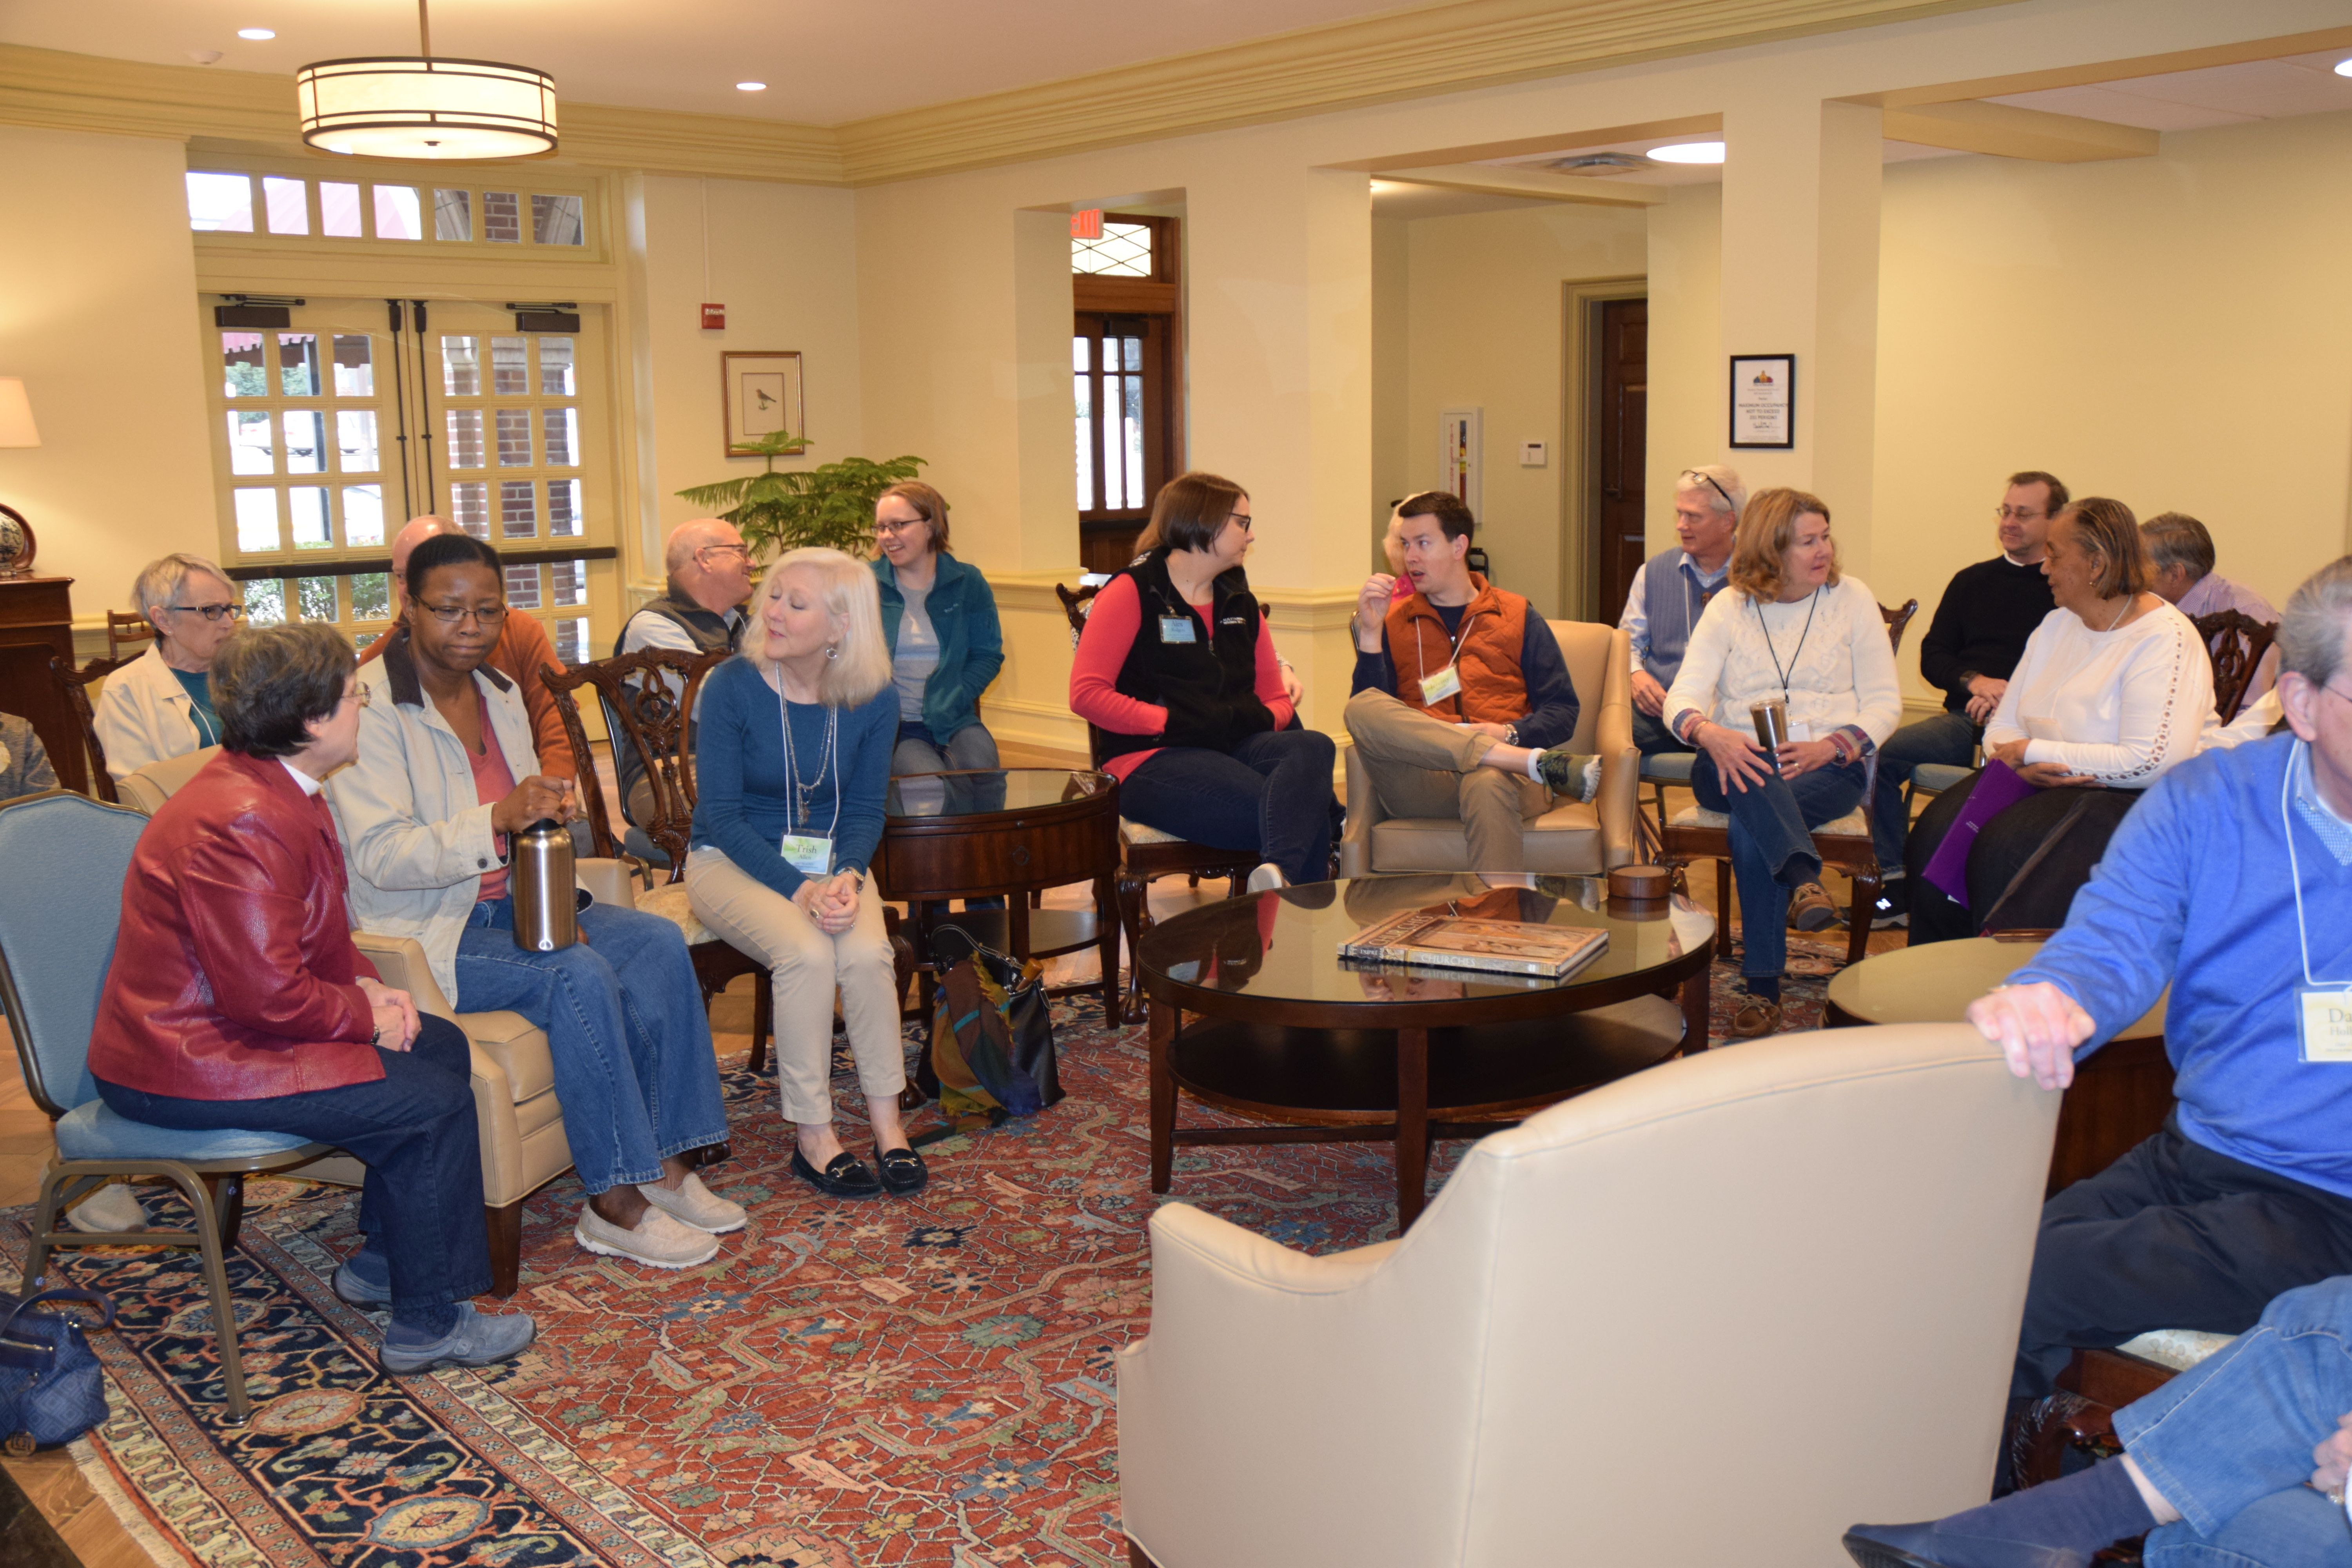 Discussions in Parlor 1